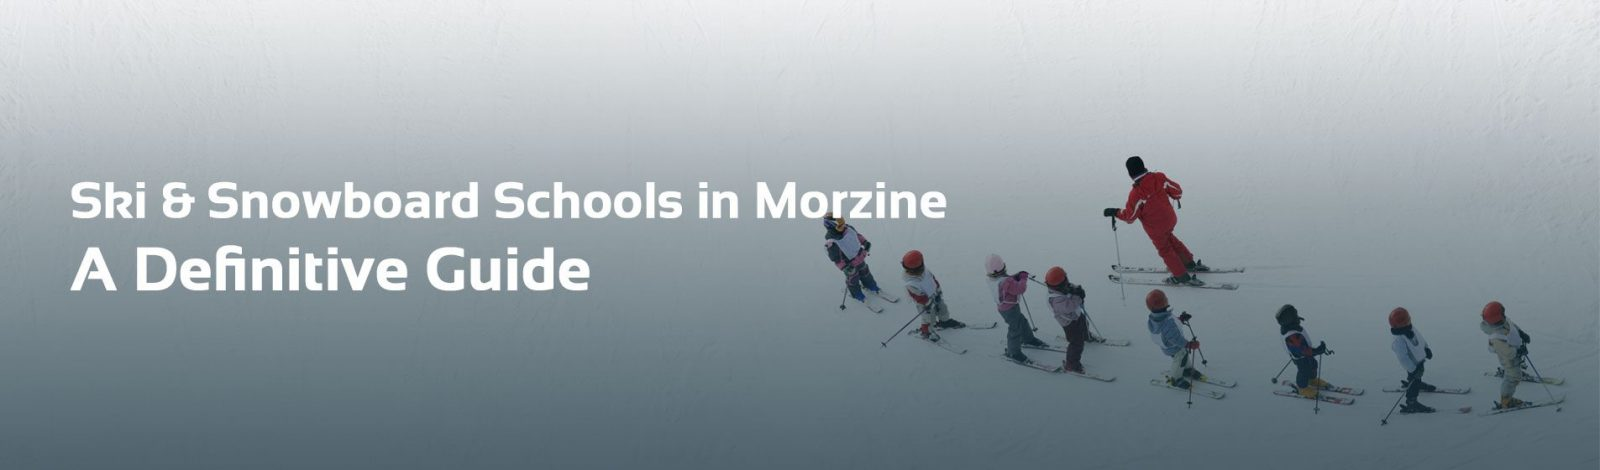 Ski Schools In Morzine Header